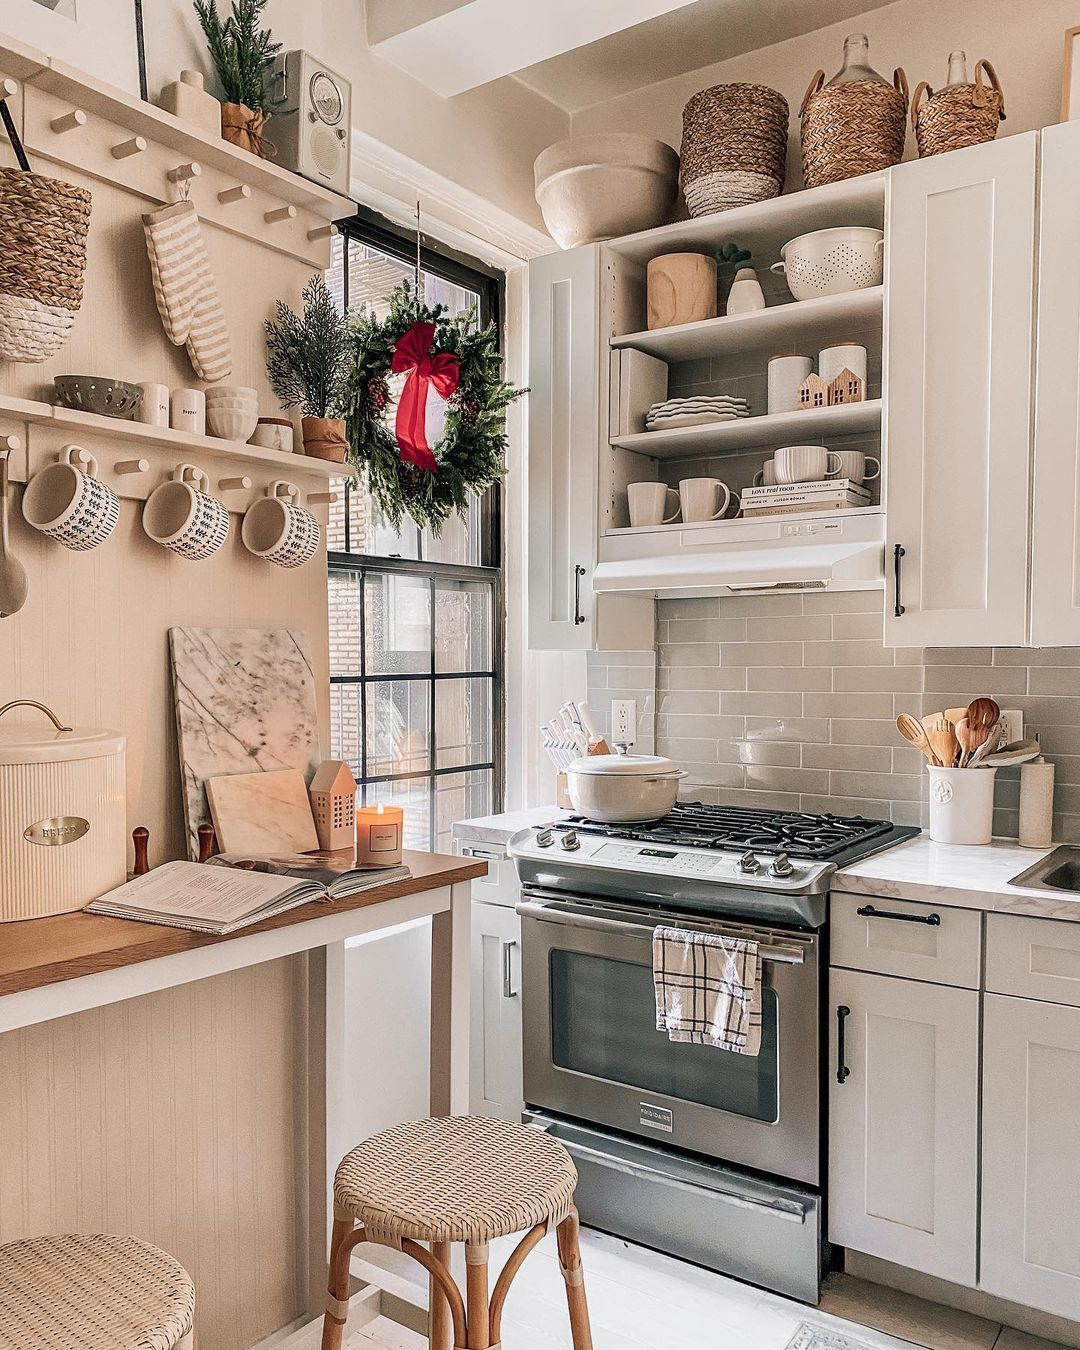 Apartment Kitchen Pretty In The Pines Nyc Kitchen Inspirations Apartment Kitchen Kitchen Decor